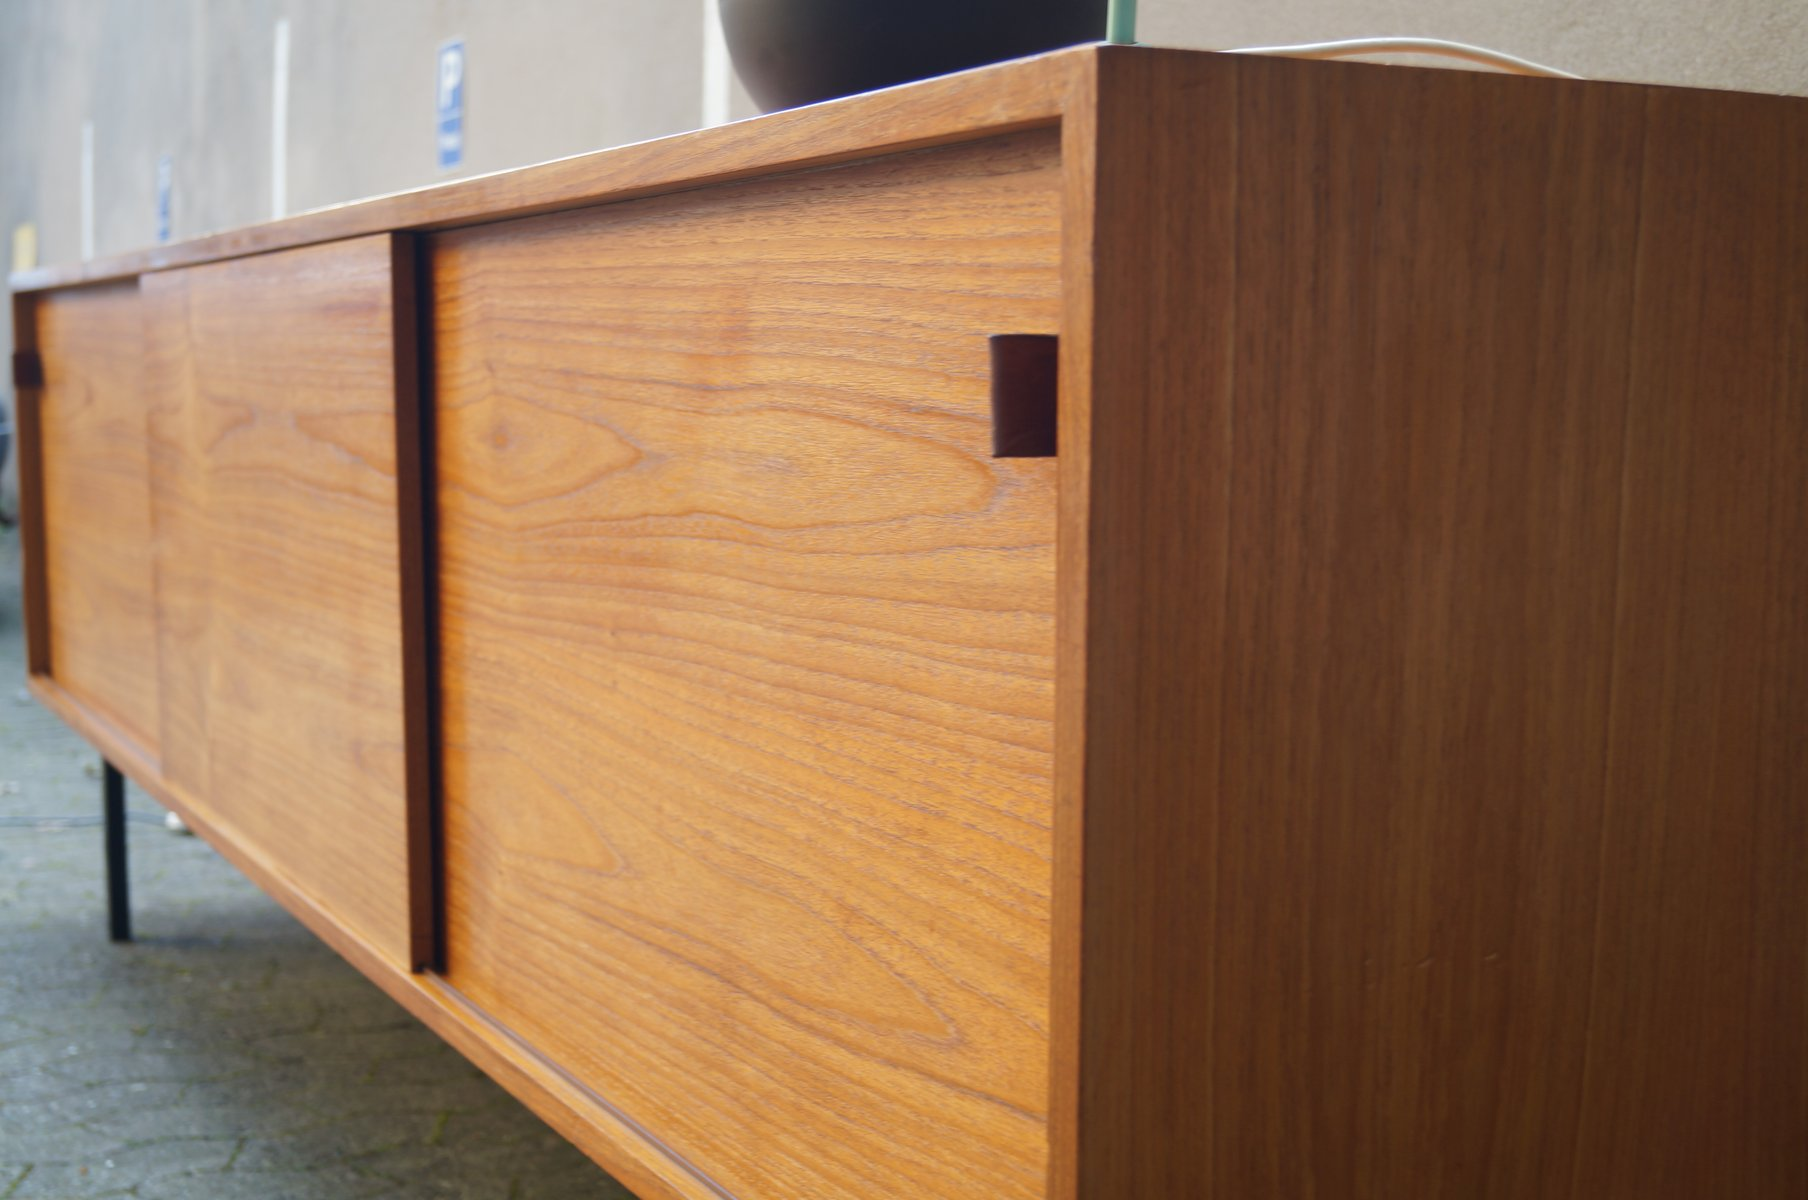 Minimalist Sideboard with Sliding Doors and Leather Handles from ...